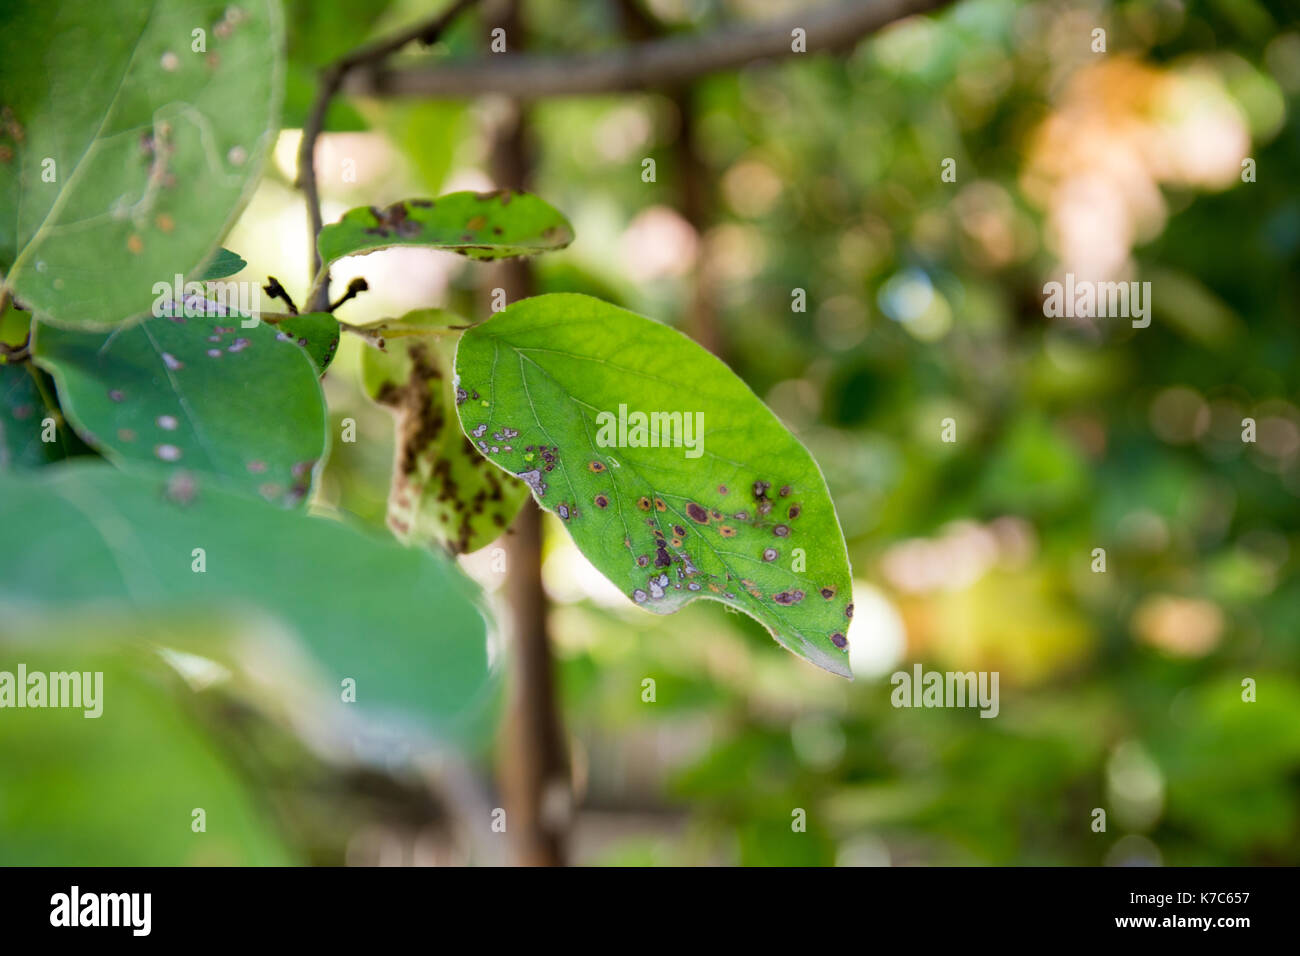 Quince leaf blight close-up. Cydonia oblonga affected by diplocarpon mespili. Dark spots on foliage, leaf spot disease. - Stock Image